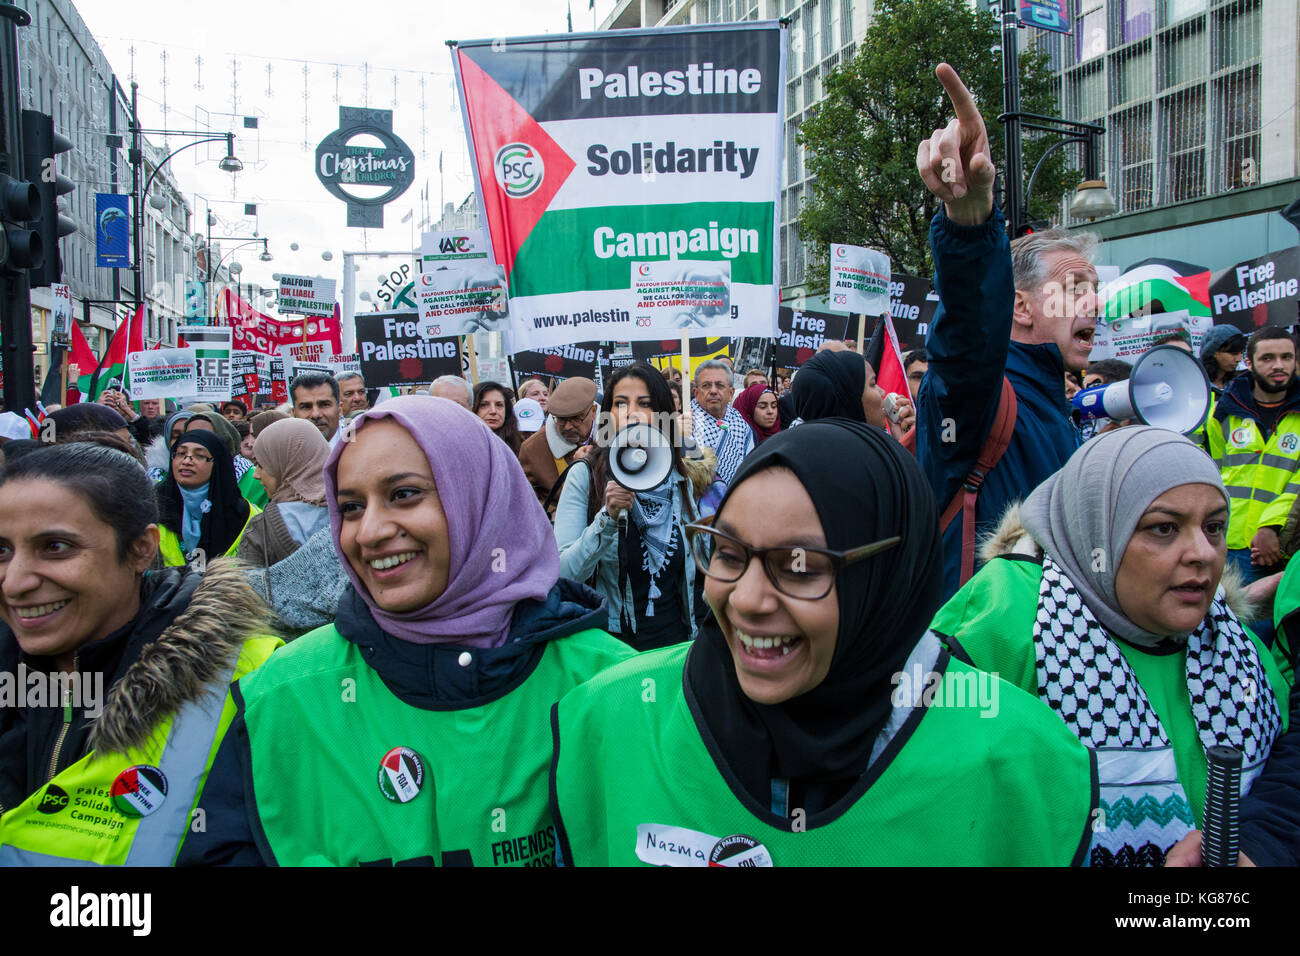 London, UK. 4th November 2017. Make It Right For Palestine - National March and Rally, from Grosvenor Square through - Stock Image